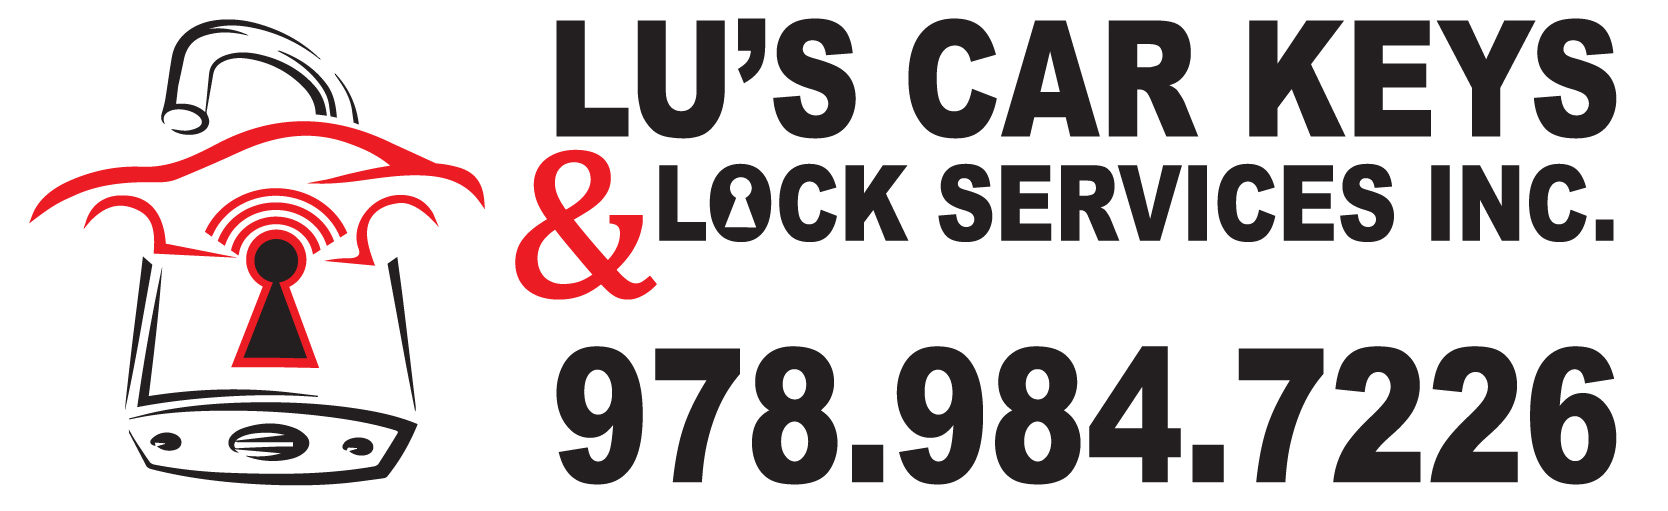 Lu's Car Keys and Lock Services, Inc.